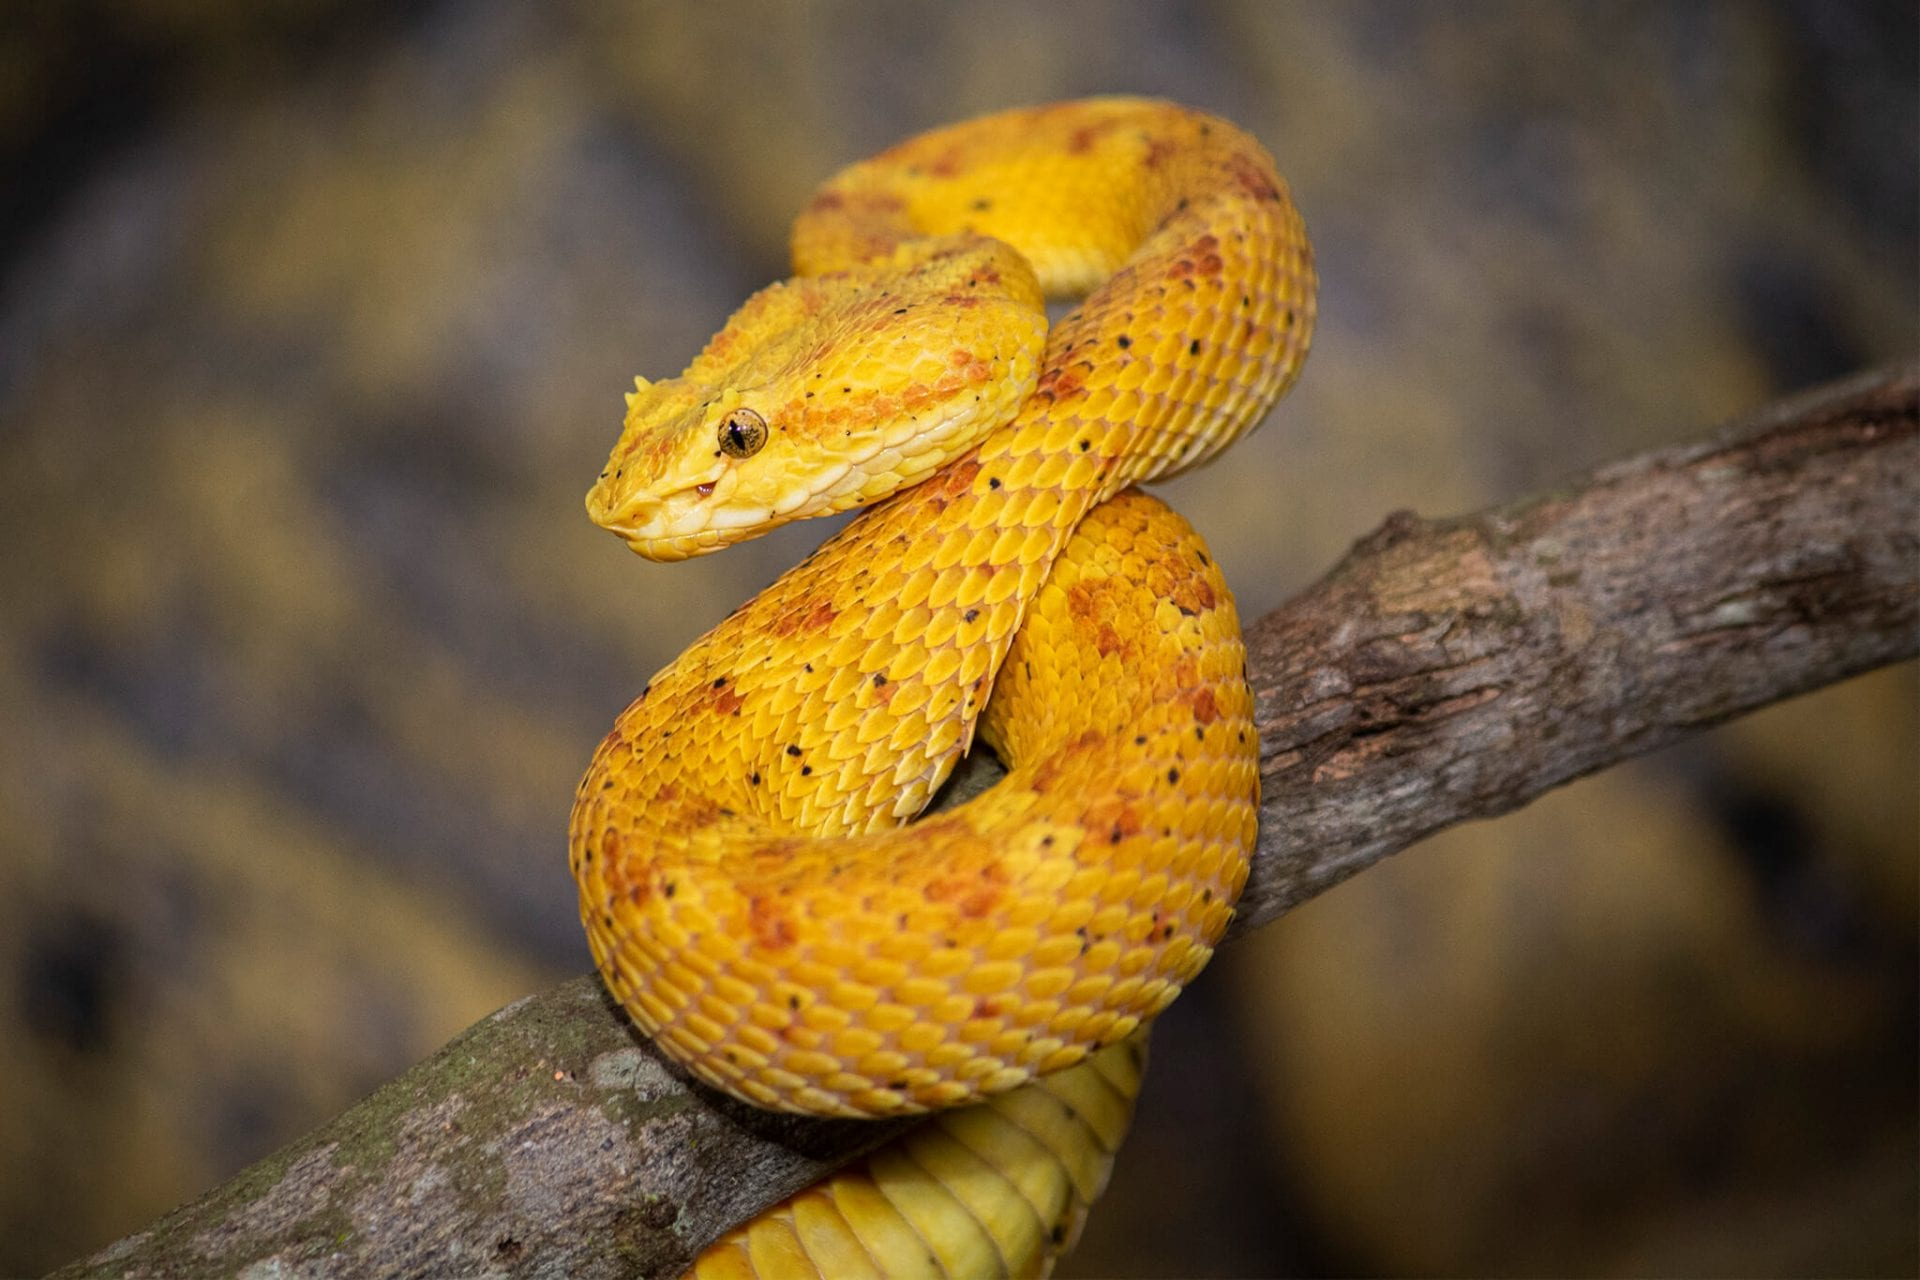 Eyelash viper snake coiled on a tree branch